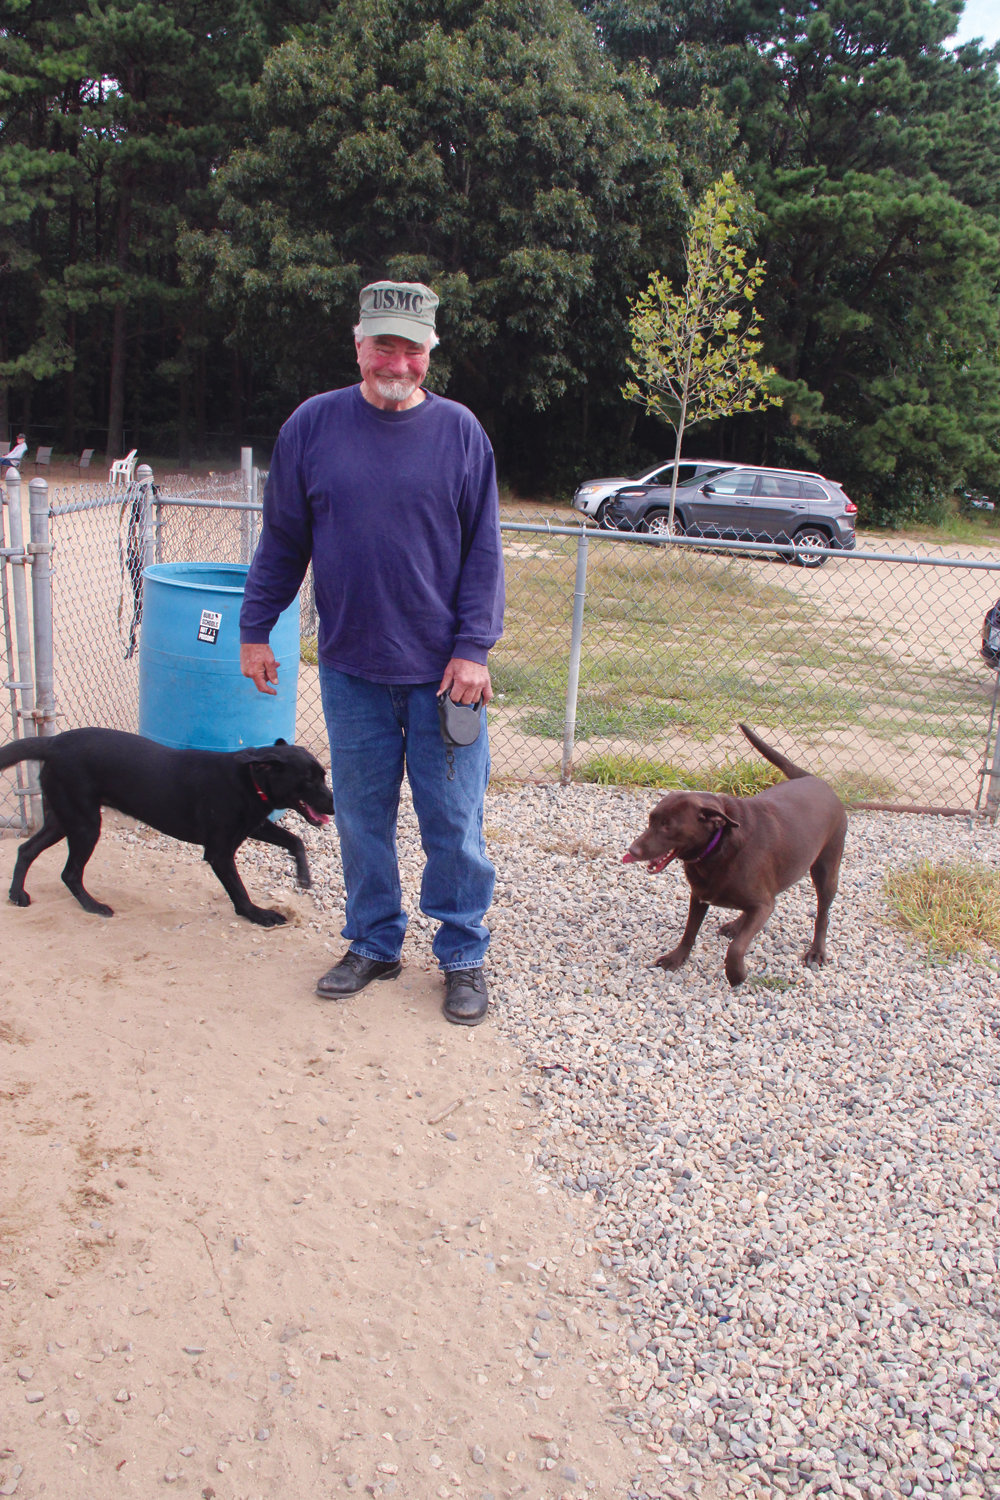 READY TO RUN: Arthur Colvin with two of the three labs he brought to the dog park Sunday morning. The black one is named Dog and the chestnut is Girl, he explained with a laugh.